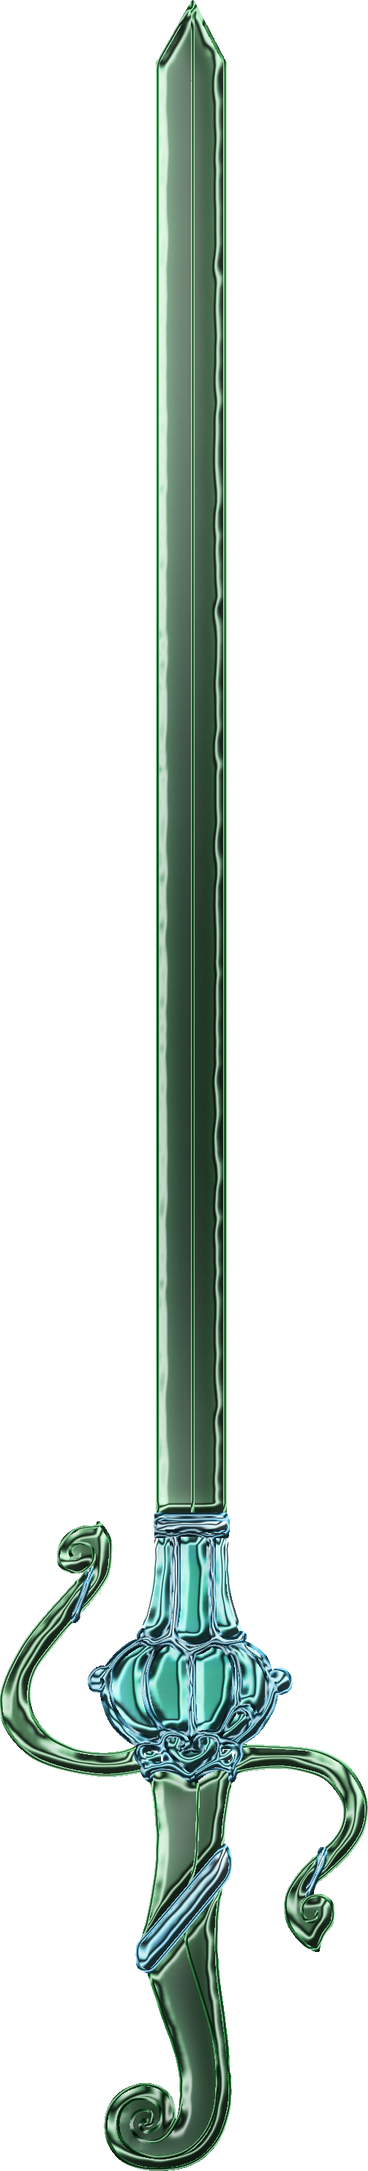 SMC Earth Sword by Iggwilv